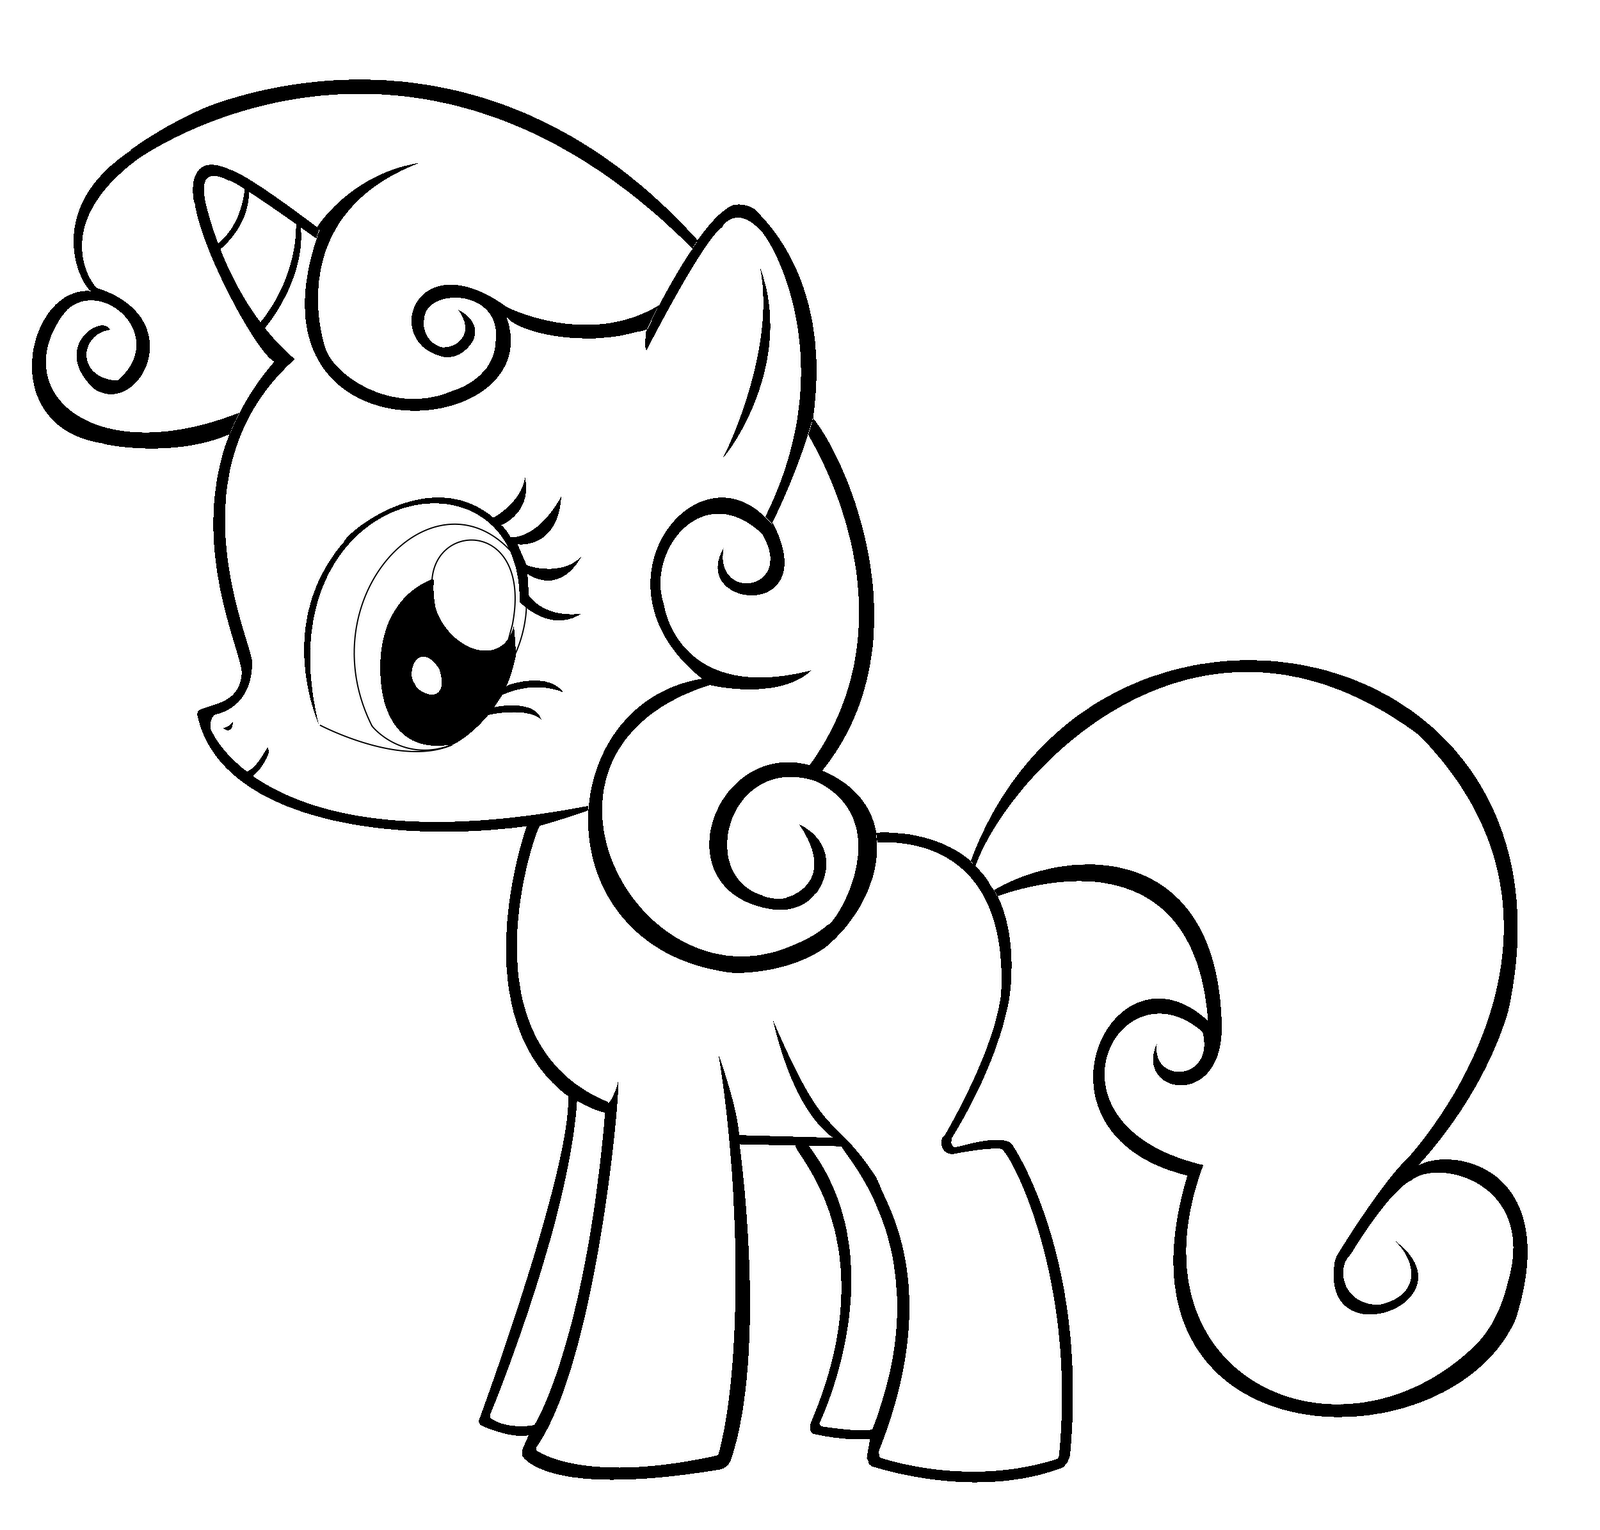 photograph relating to Pony Printable Coloring Pages called Absolutely free Printable My Tiny Pony Coloring Web pages For Children